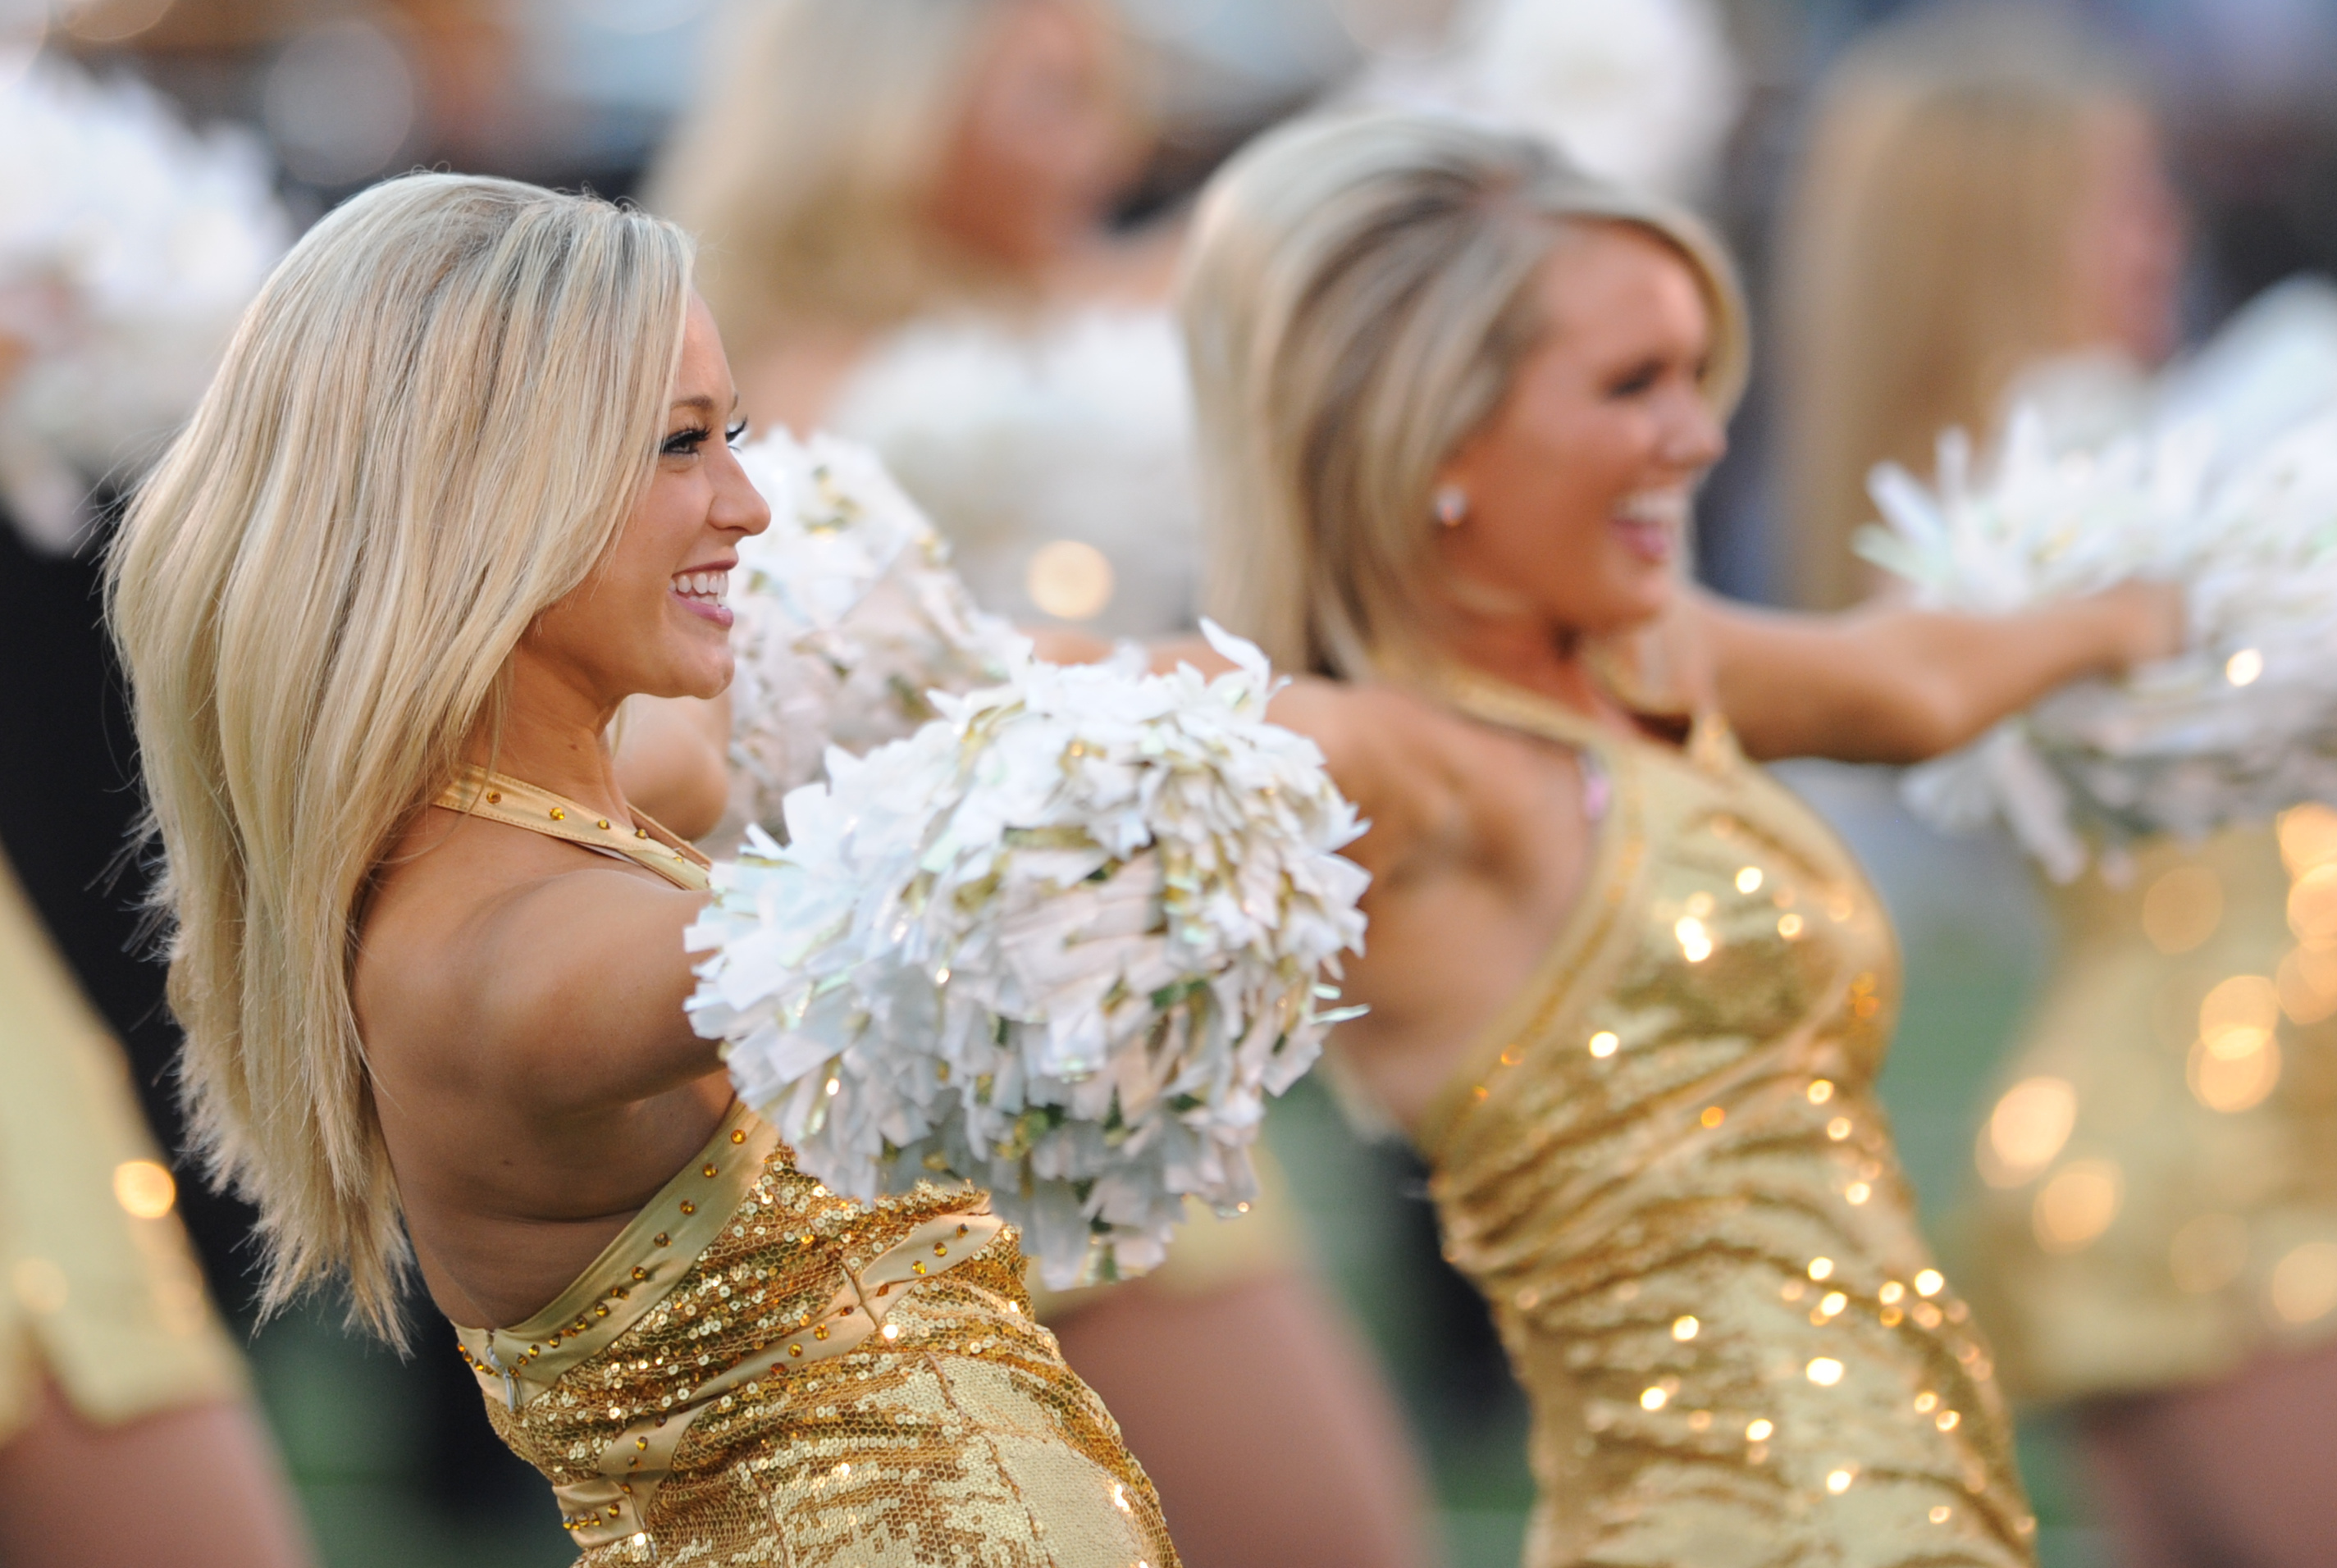 Cheerleaders perform during the first half of an NCAA college football game between Missouri and Alabama Saturday, Oct. 13, 2012, in Columbia, Mo. (AP Photo/L.G. Patterson)